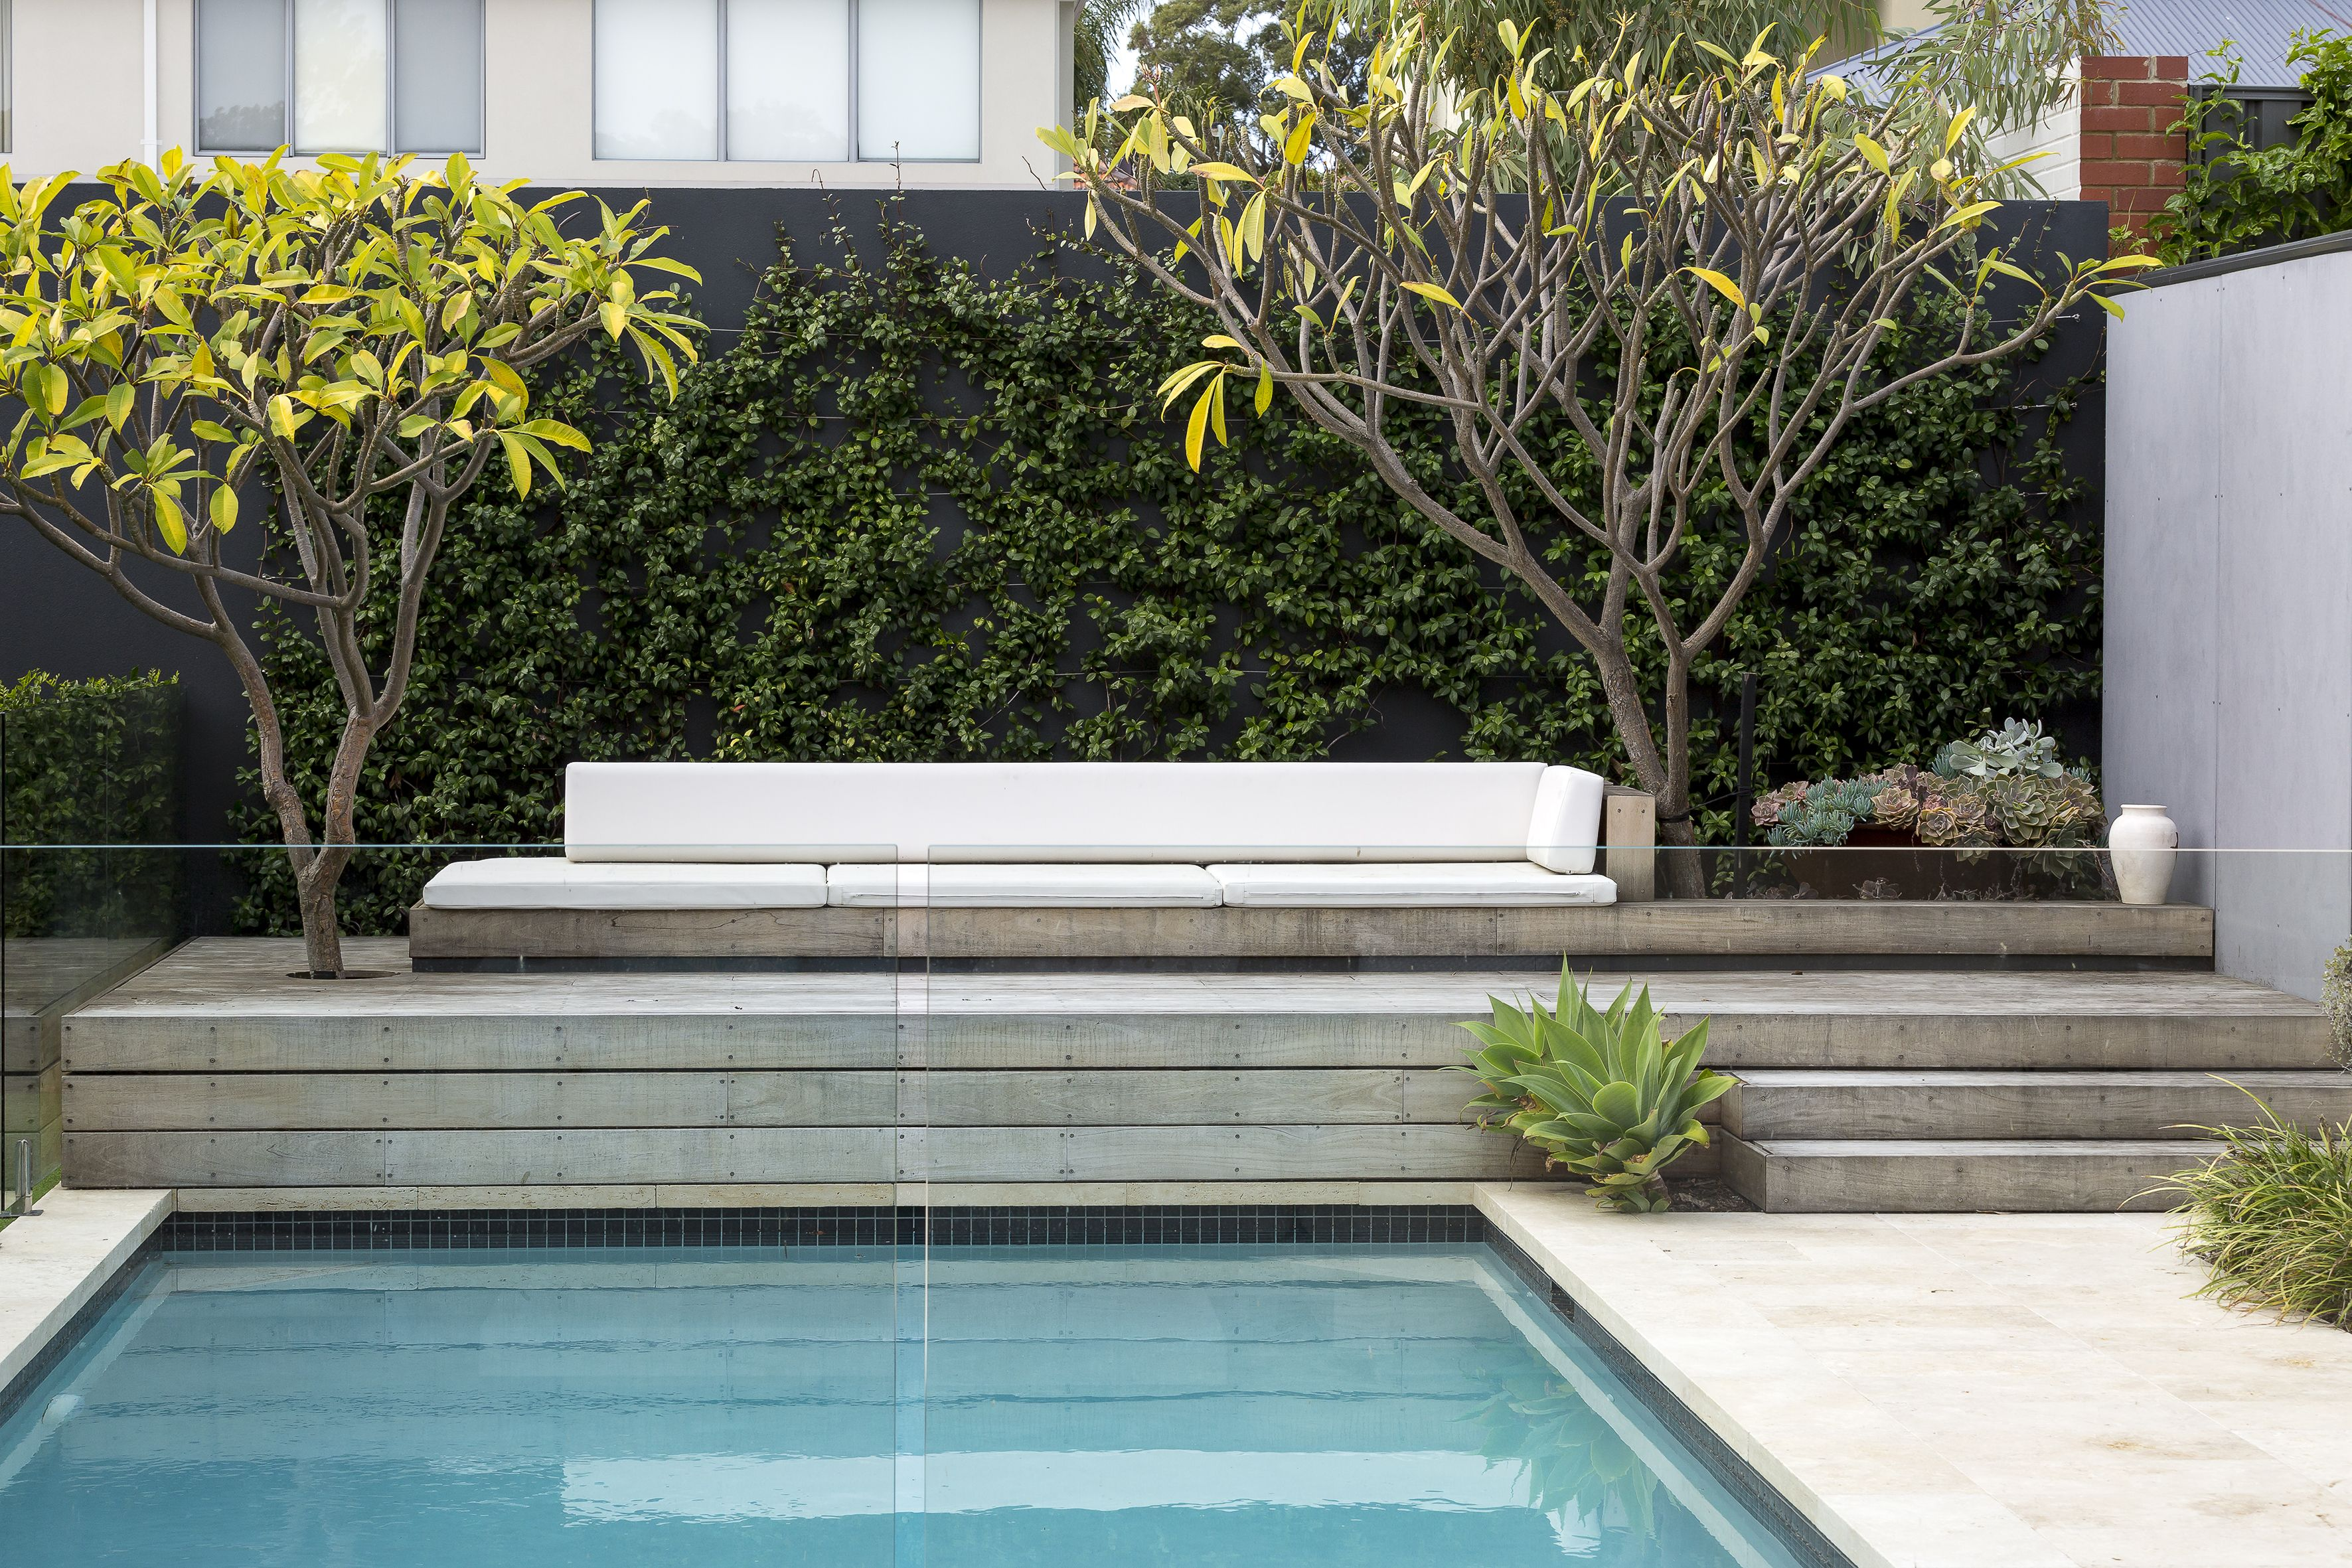 pool decking designed to hide pool cover holding an outdoor built